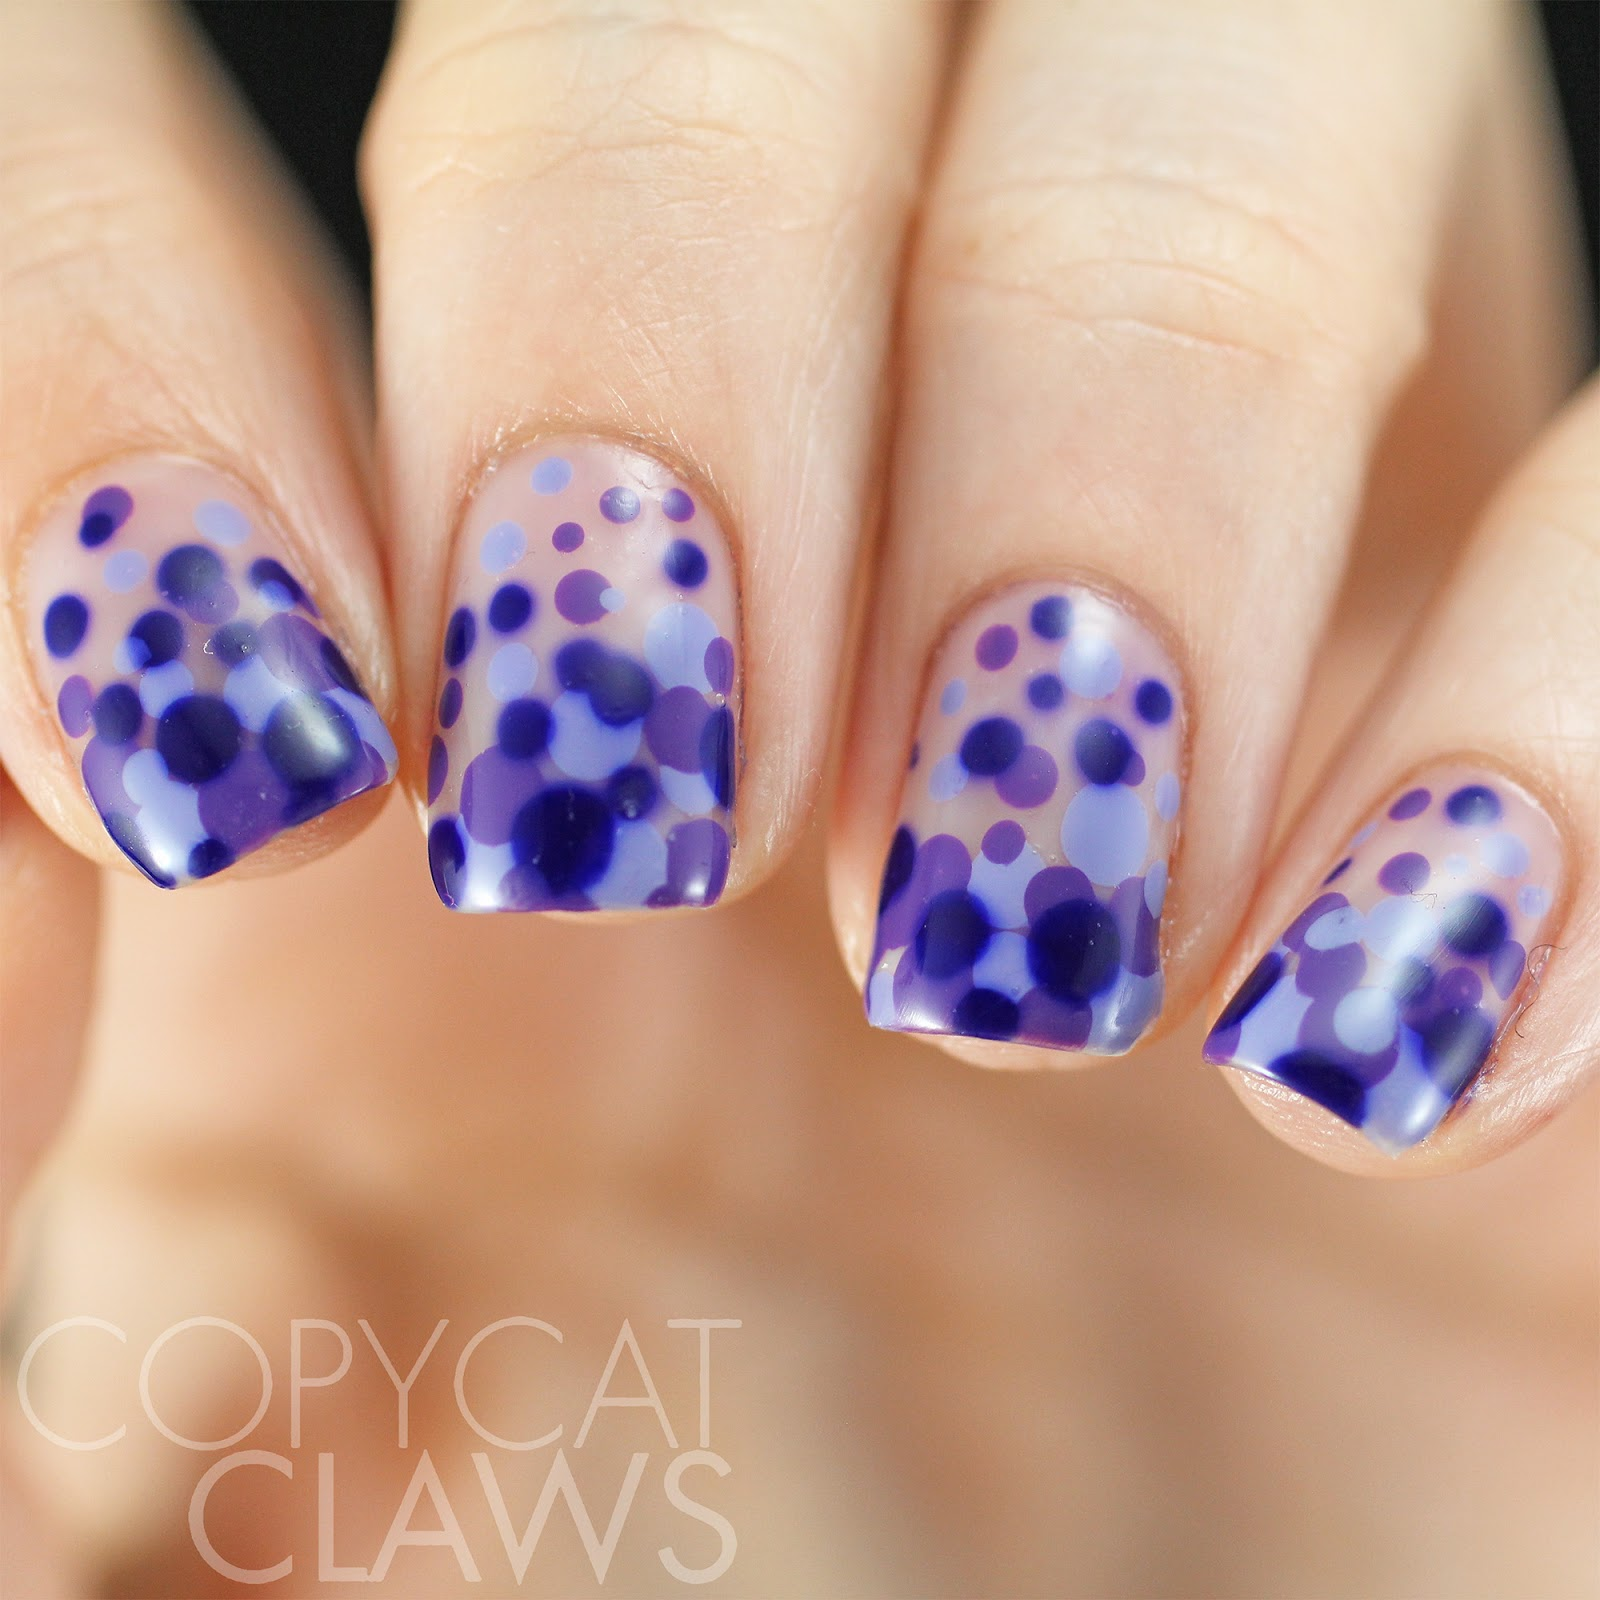 Copycat Claws: 40 Great Nail Art Ideas - 3 Shades of Purple